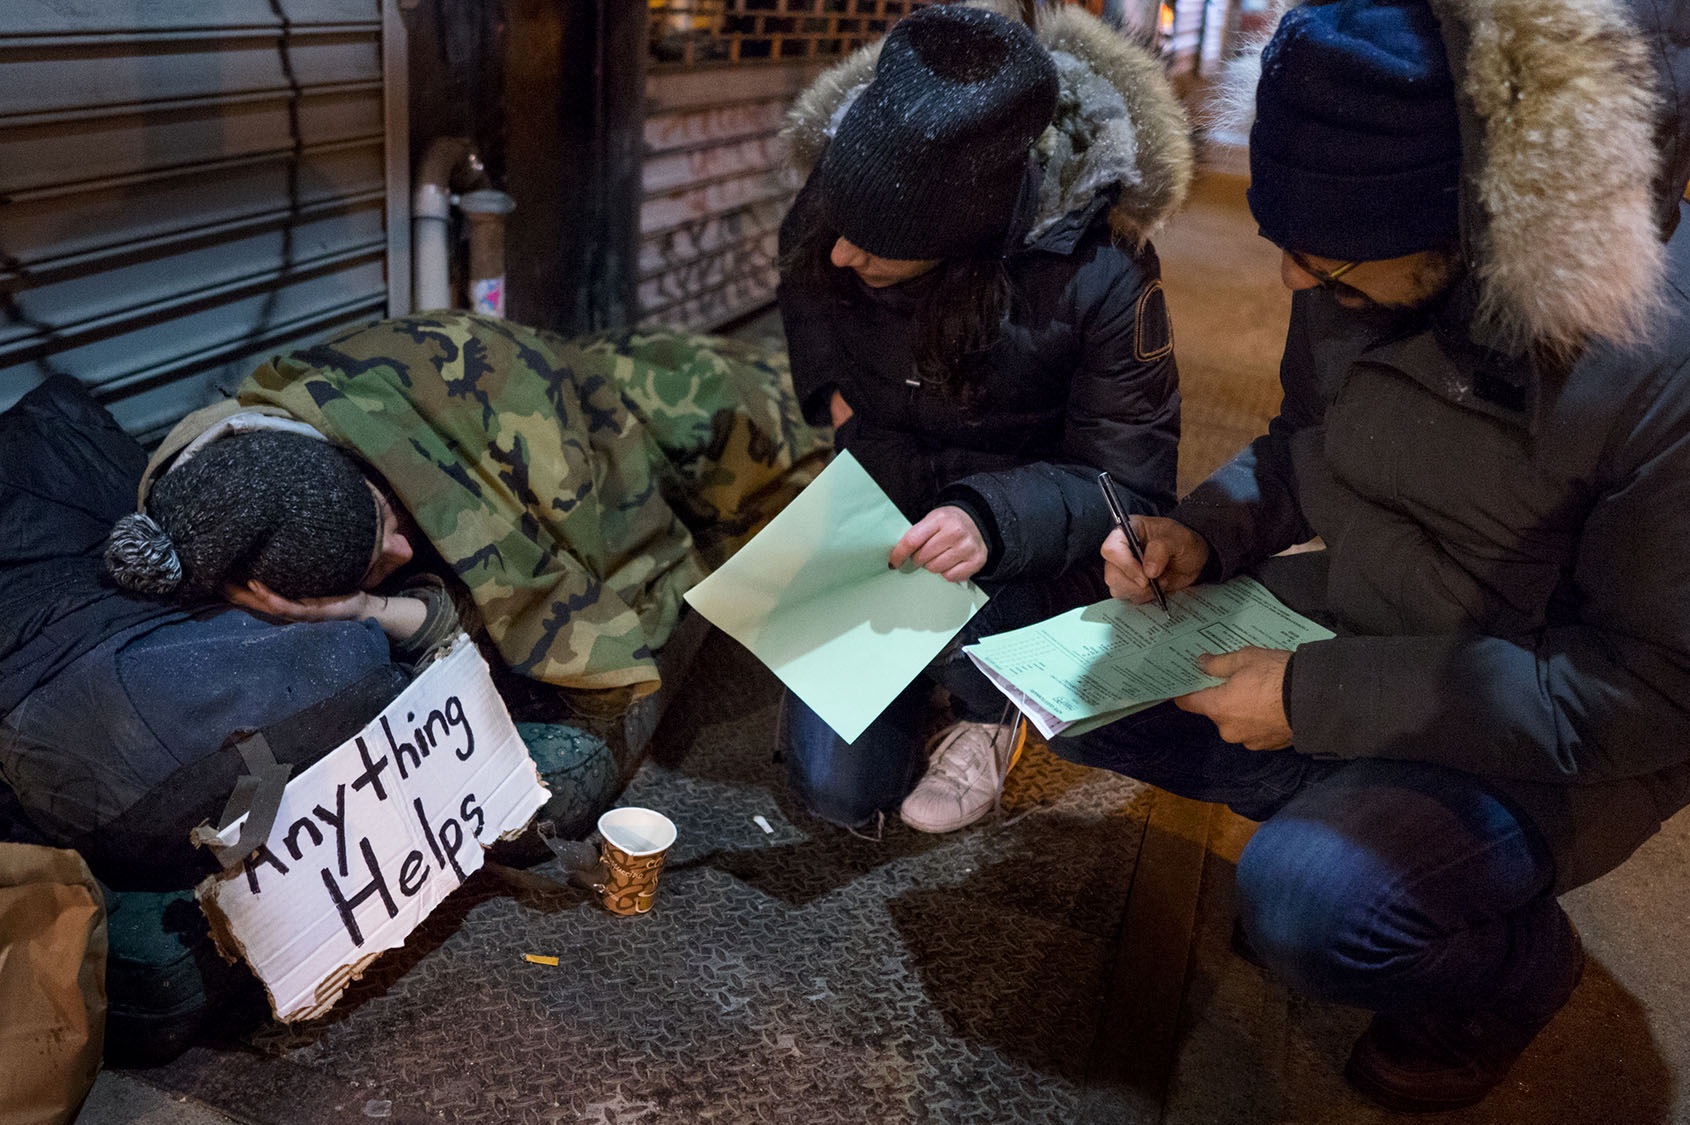 Counting the homeless of New York